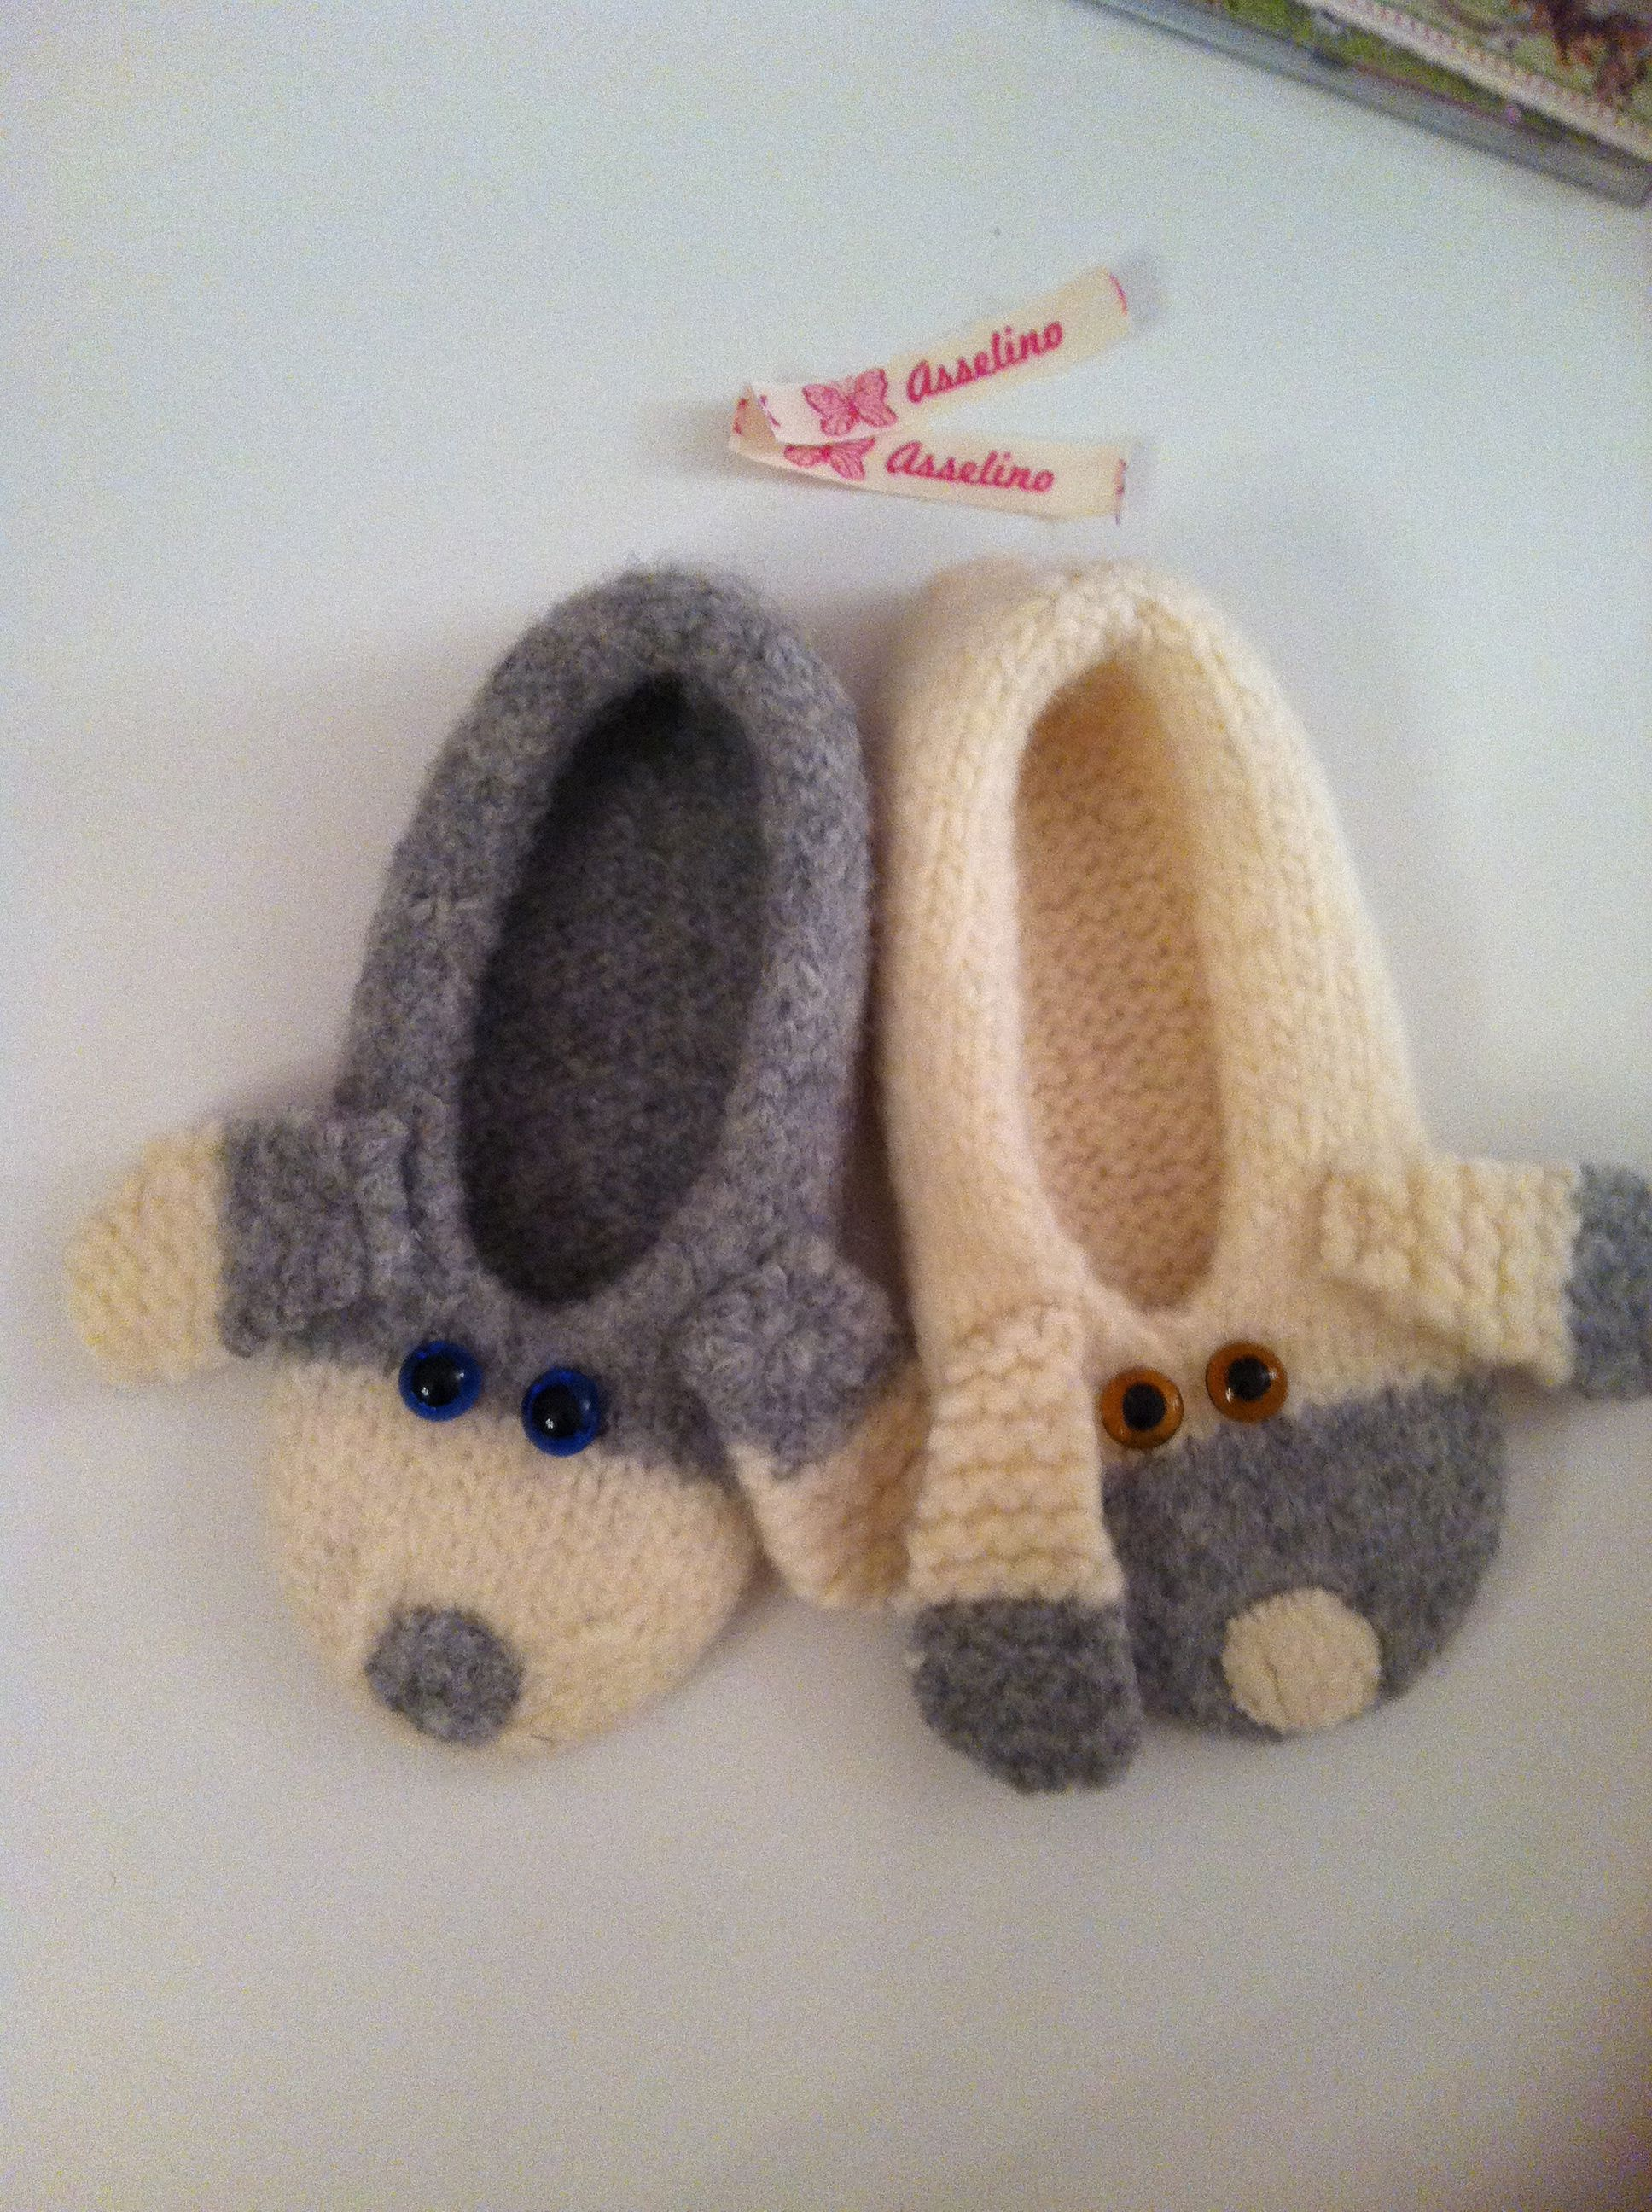 handmade by asselino, cosy slippers for little people, material: felt